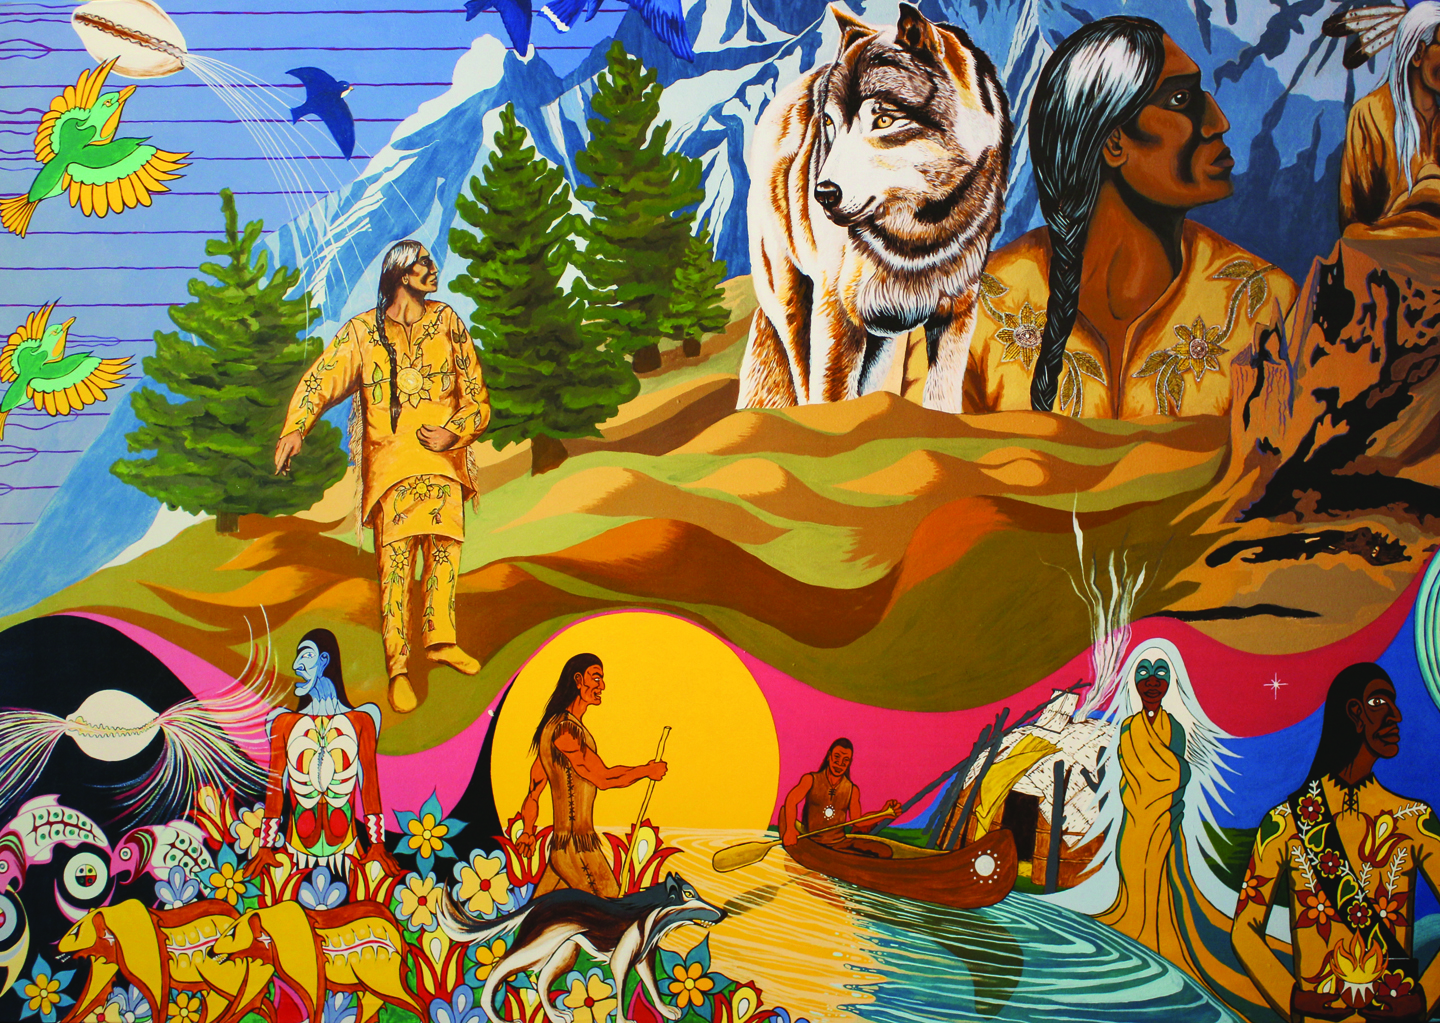 Image showing the 3rd of 3 panels depicting the history of the Mississaugas of the Credit First Nation